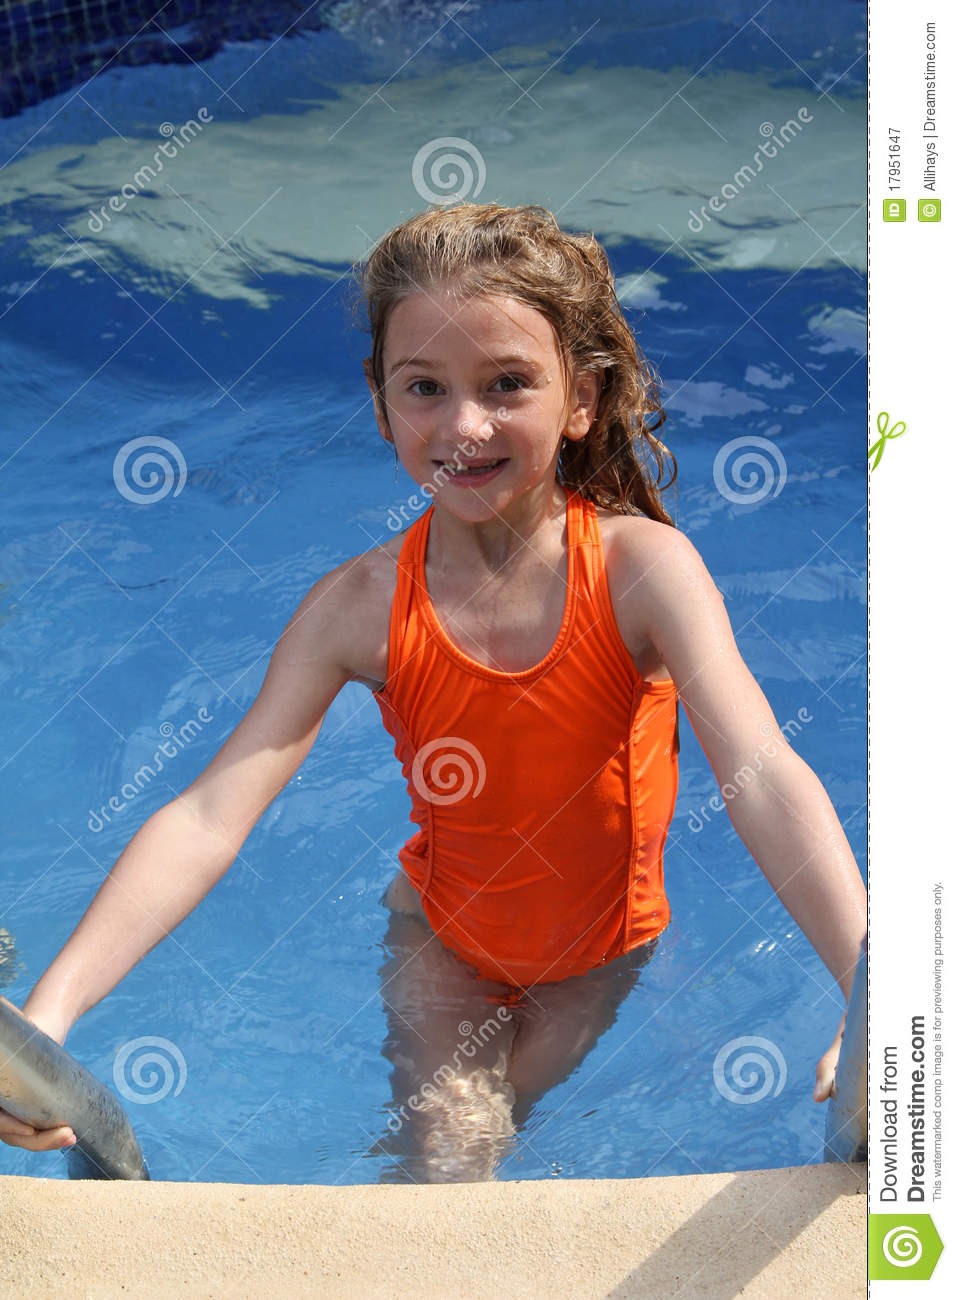 Girl Climbing Out Of Pool Royalty Free Stock Photography Image 17951647